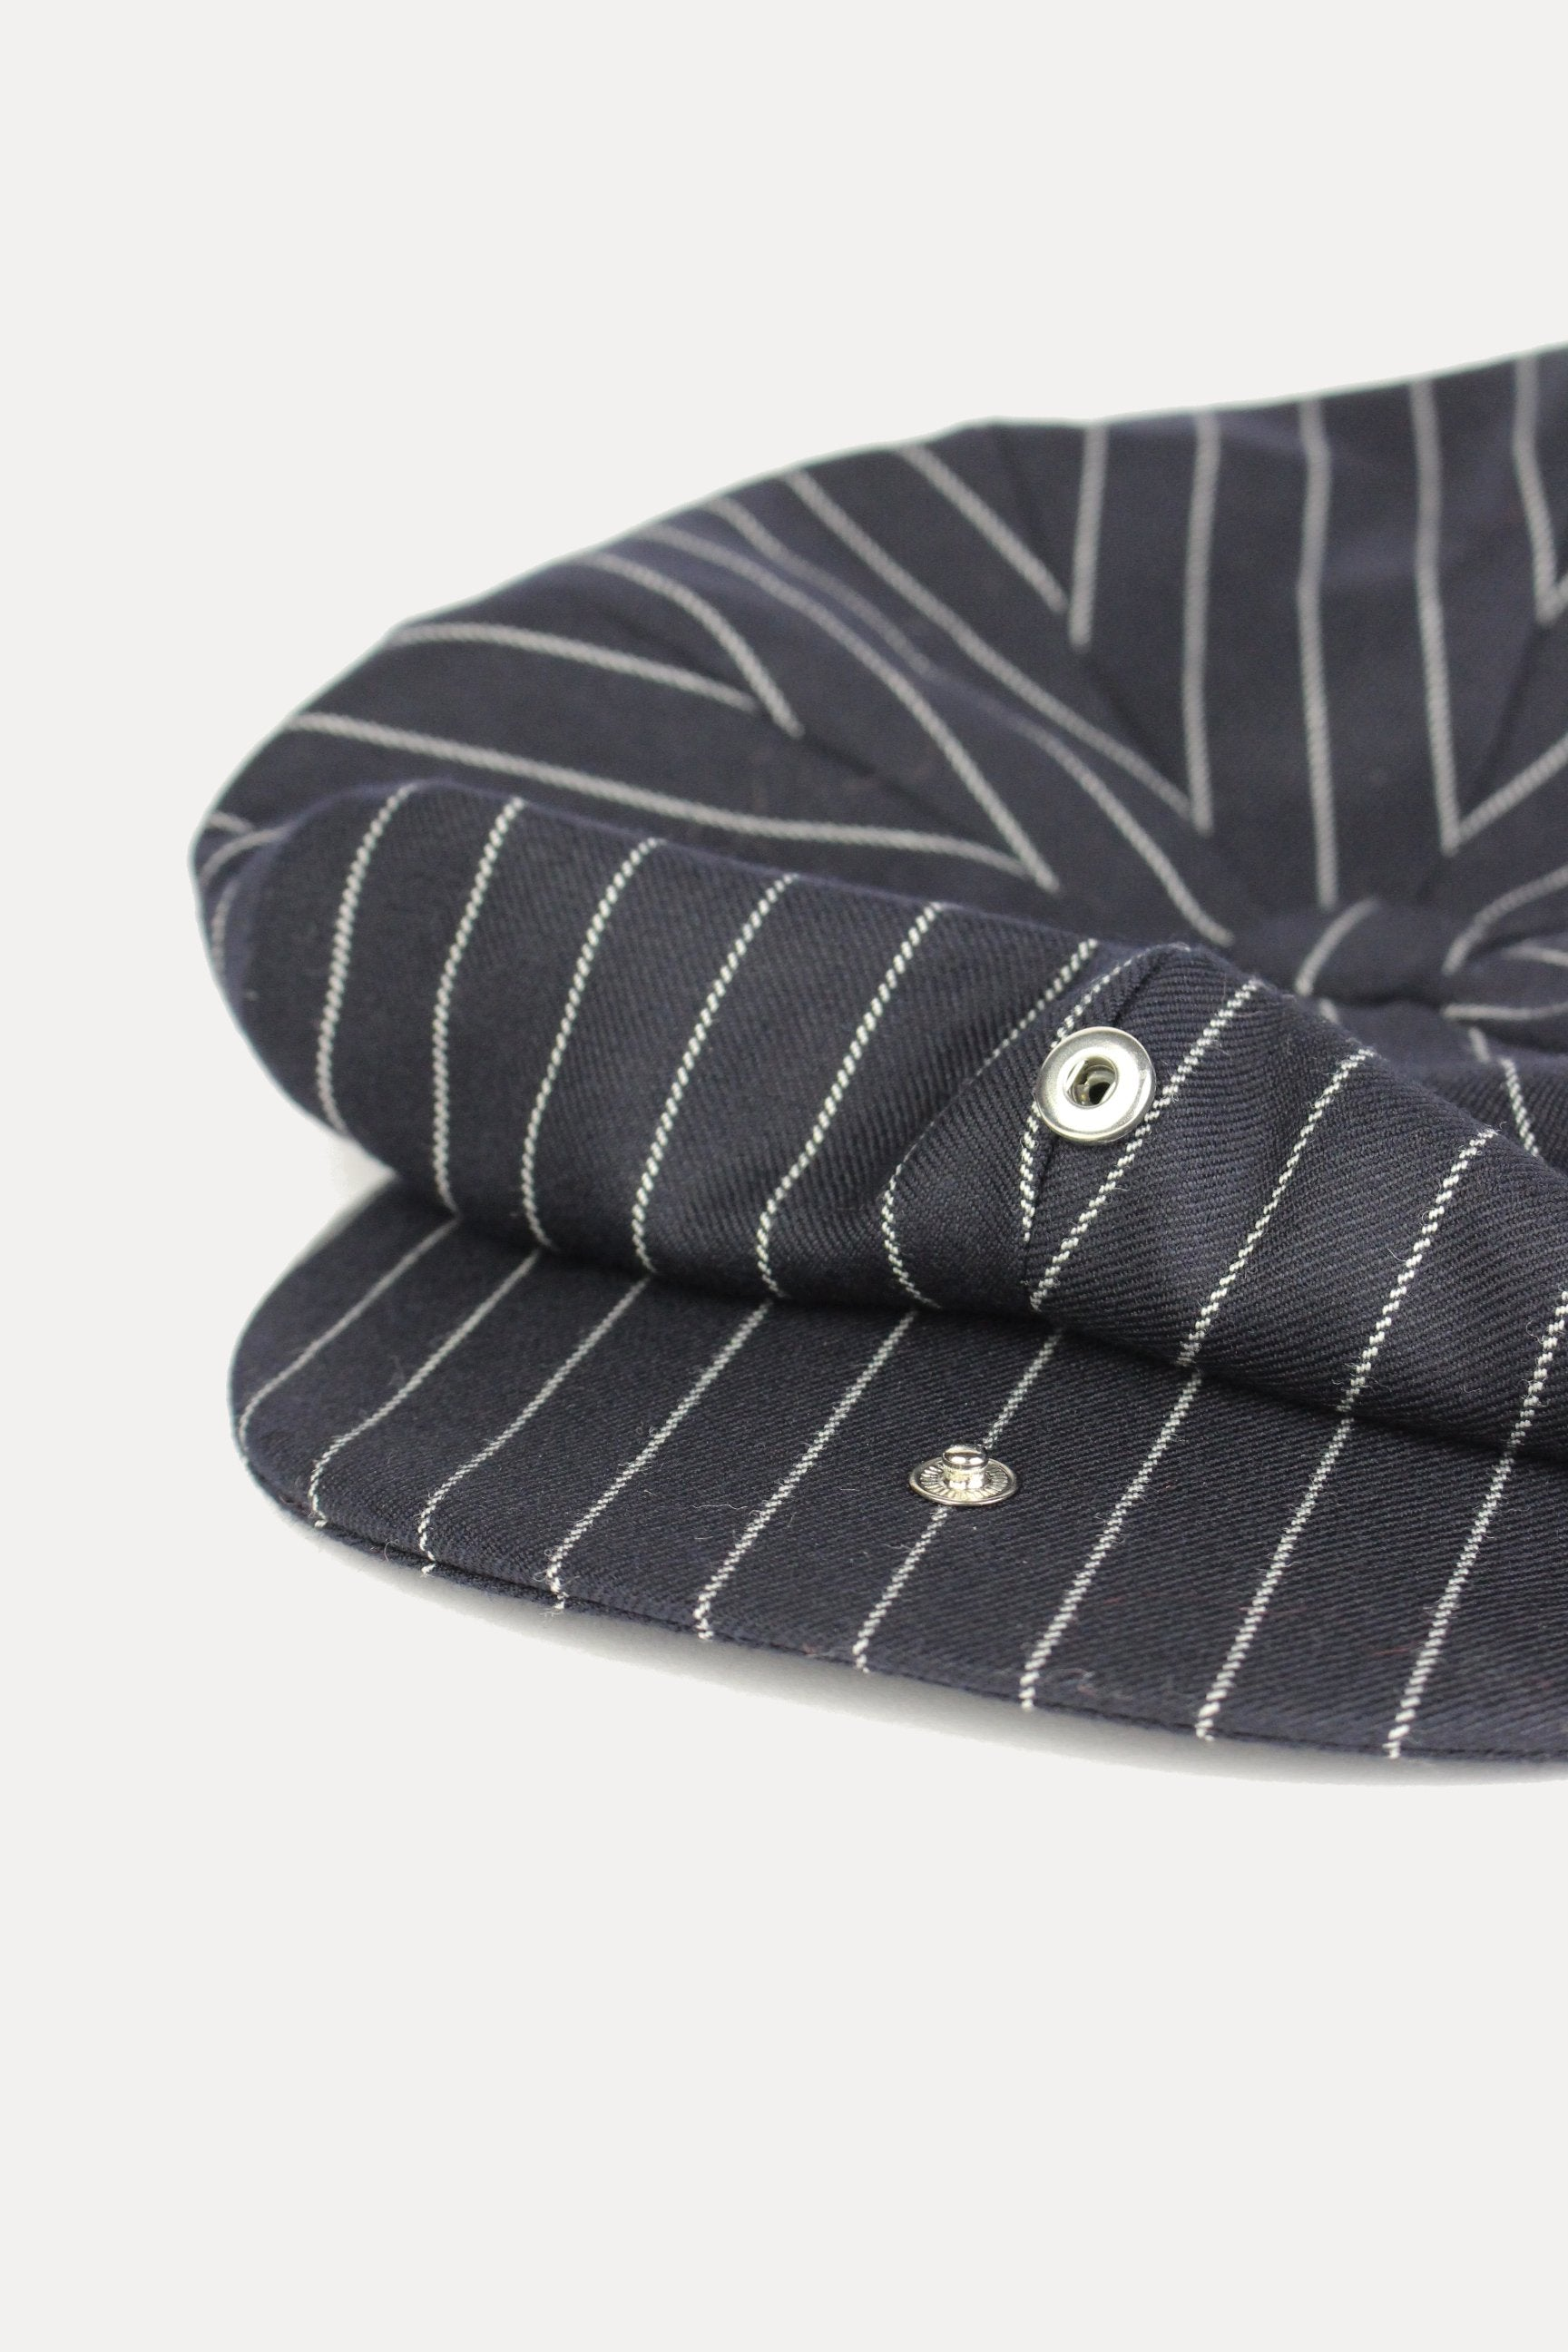 CLYDE - NAVY ROPE STRIPE-hats-A Child Of The Jago